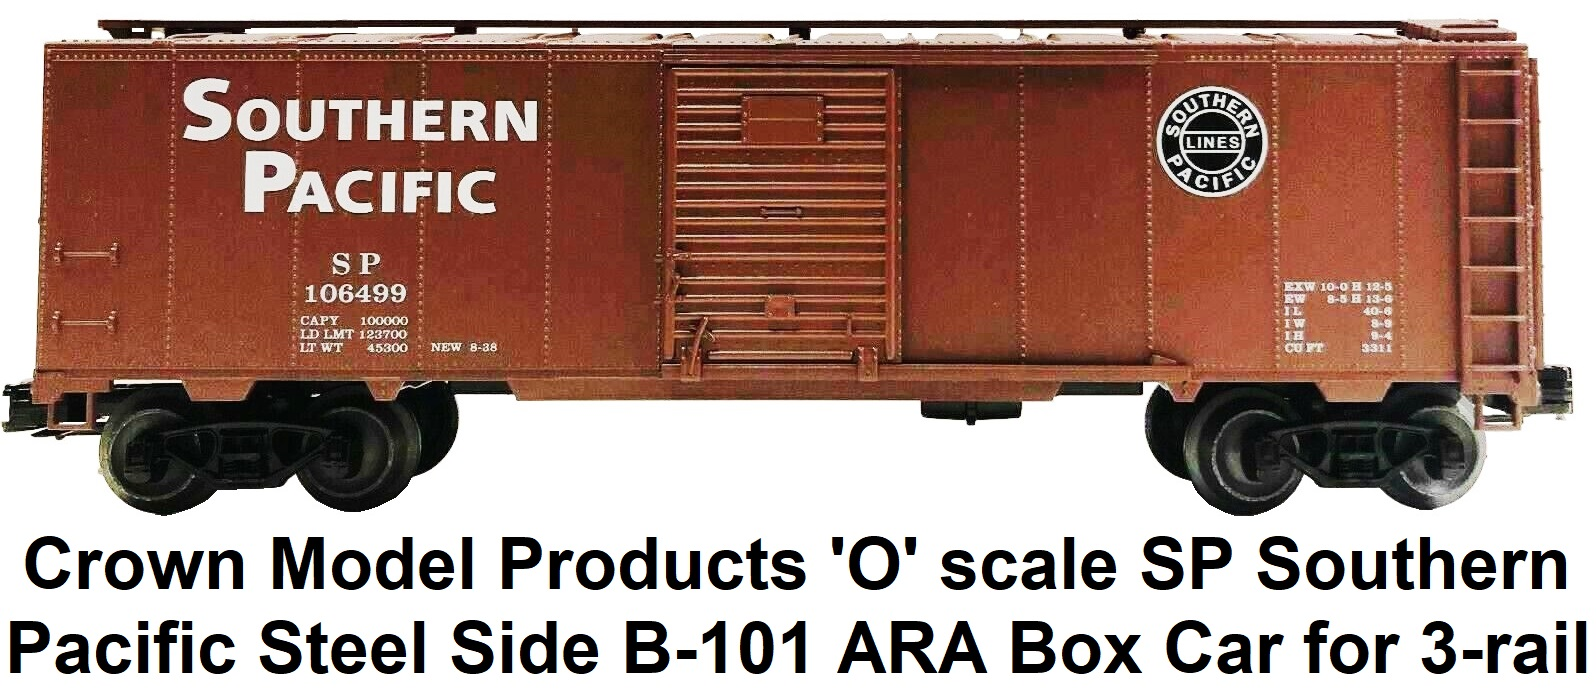 Crown Model Products 'O' scale SP Southern Pacific Steel Side B-101 ARA Box Car #106499 for 3-rail